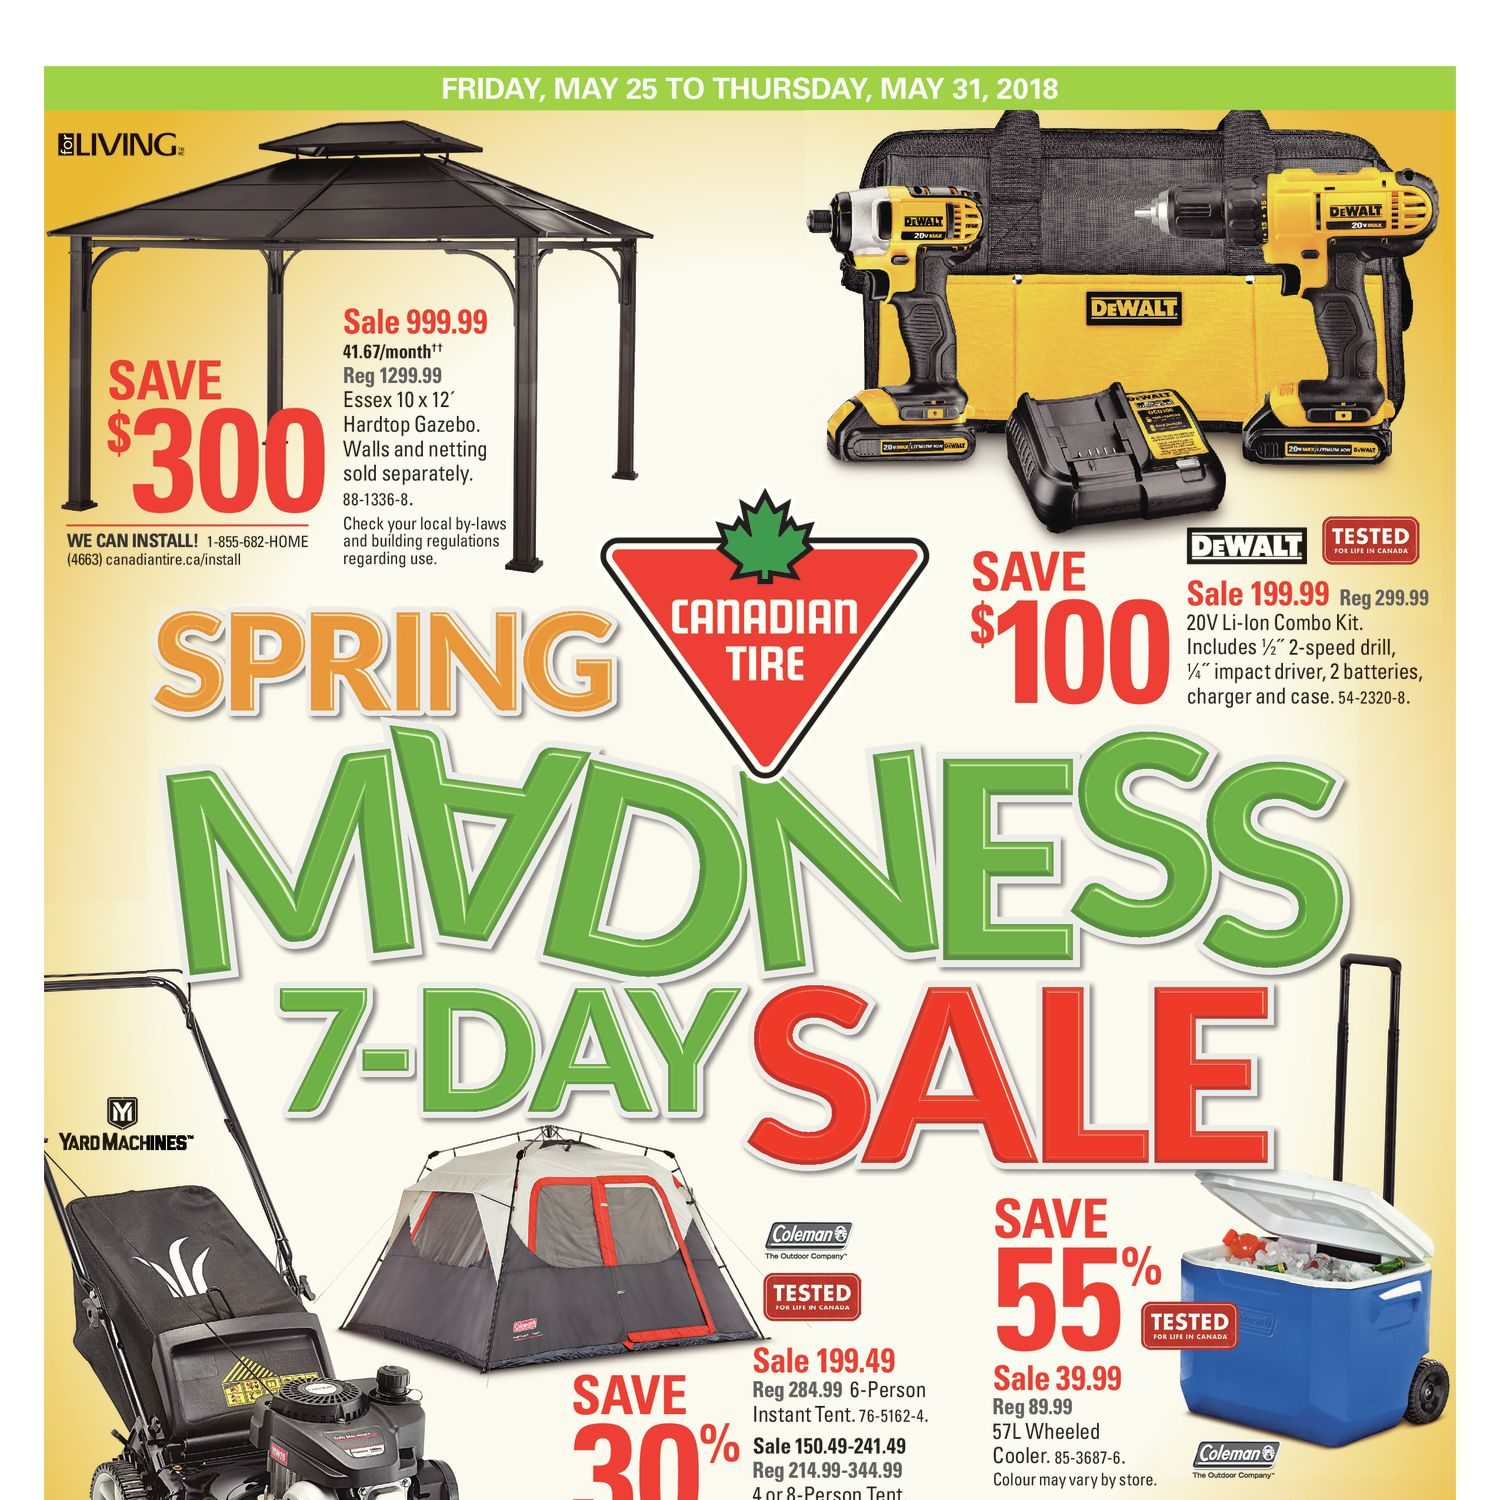 Canadian tire weekly flyer spring madness 7 day sale may 25 31 canadian tire weekly flyer spring madness 7 day sale may 25 31 redflagdeals greentooth Image collections